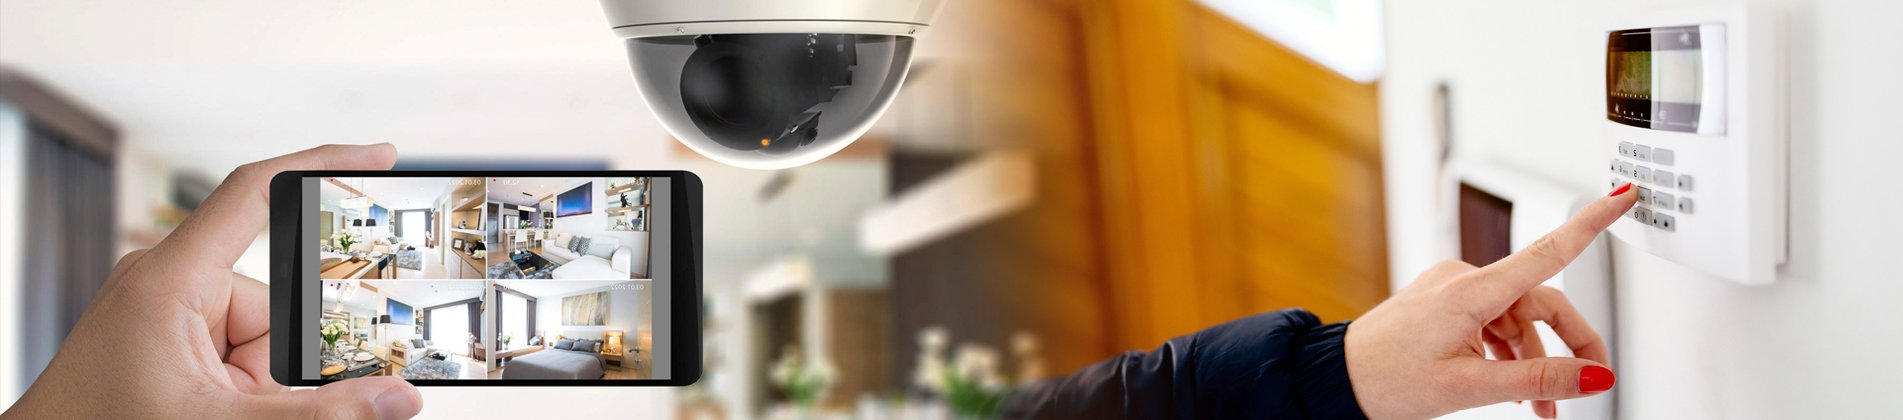 Surveillance systems in Houston